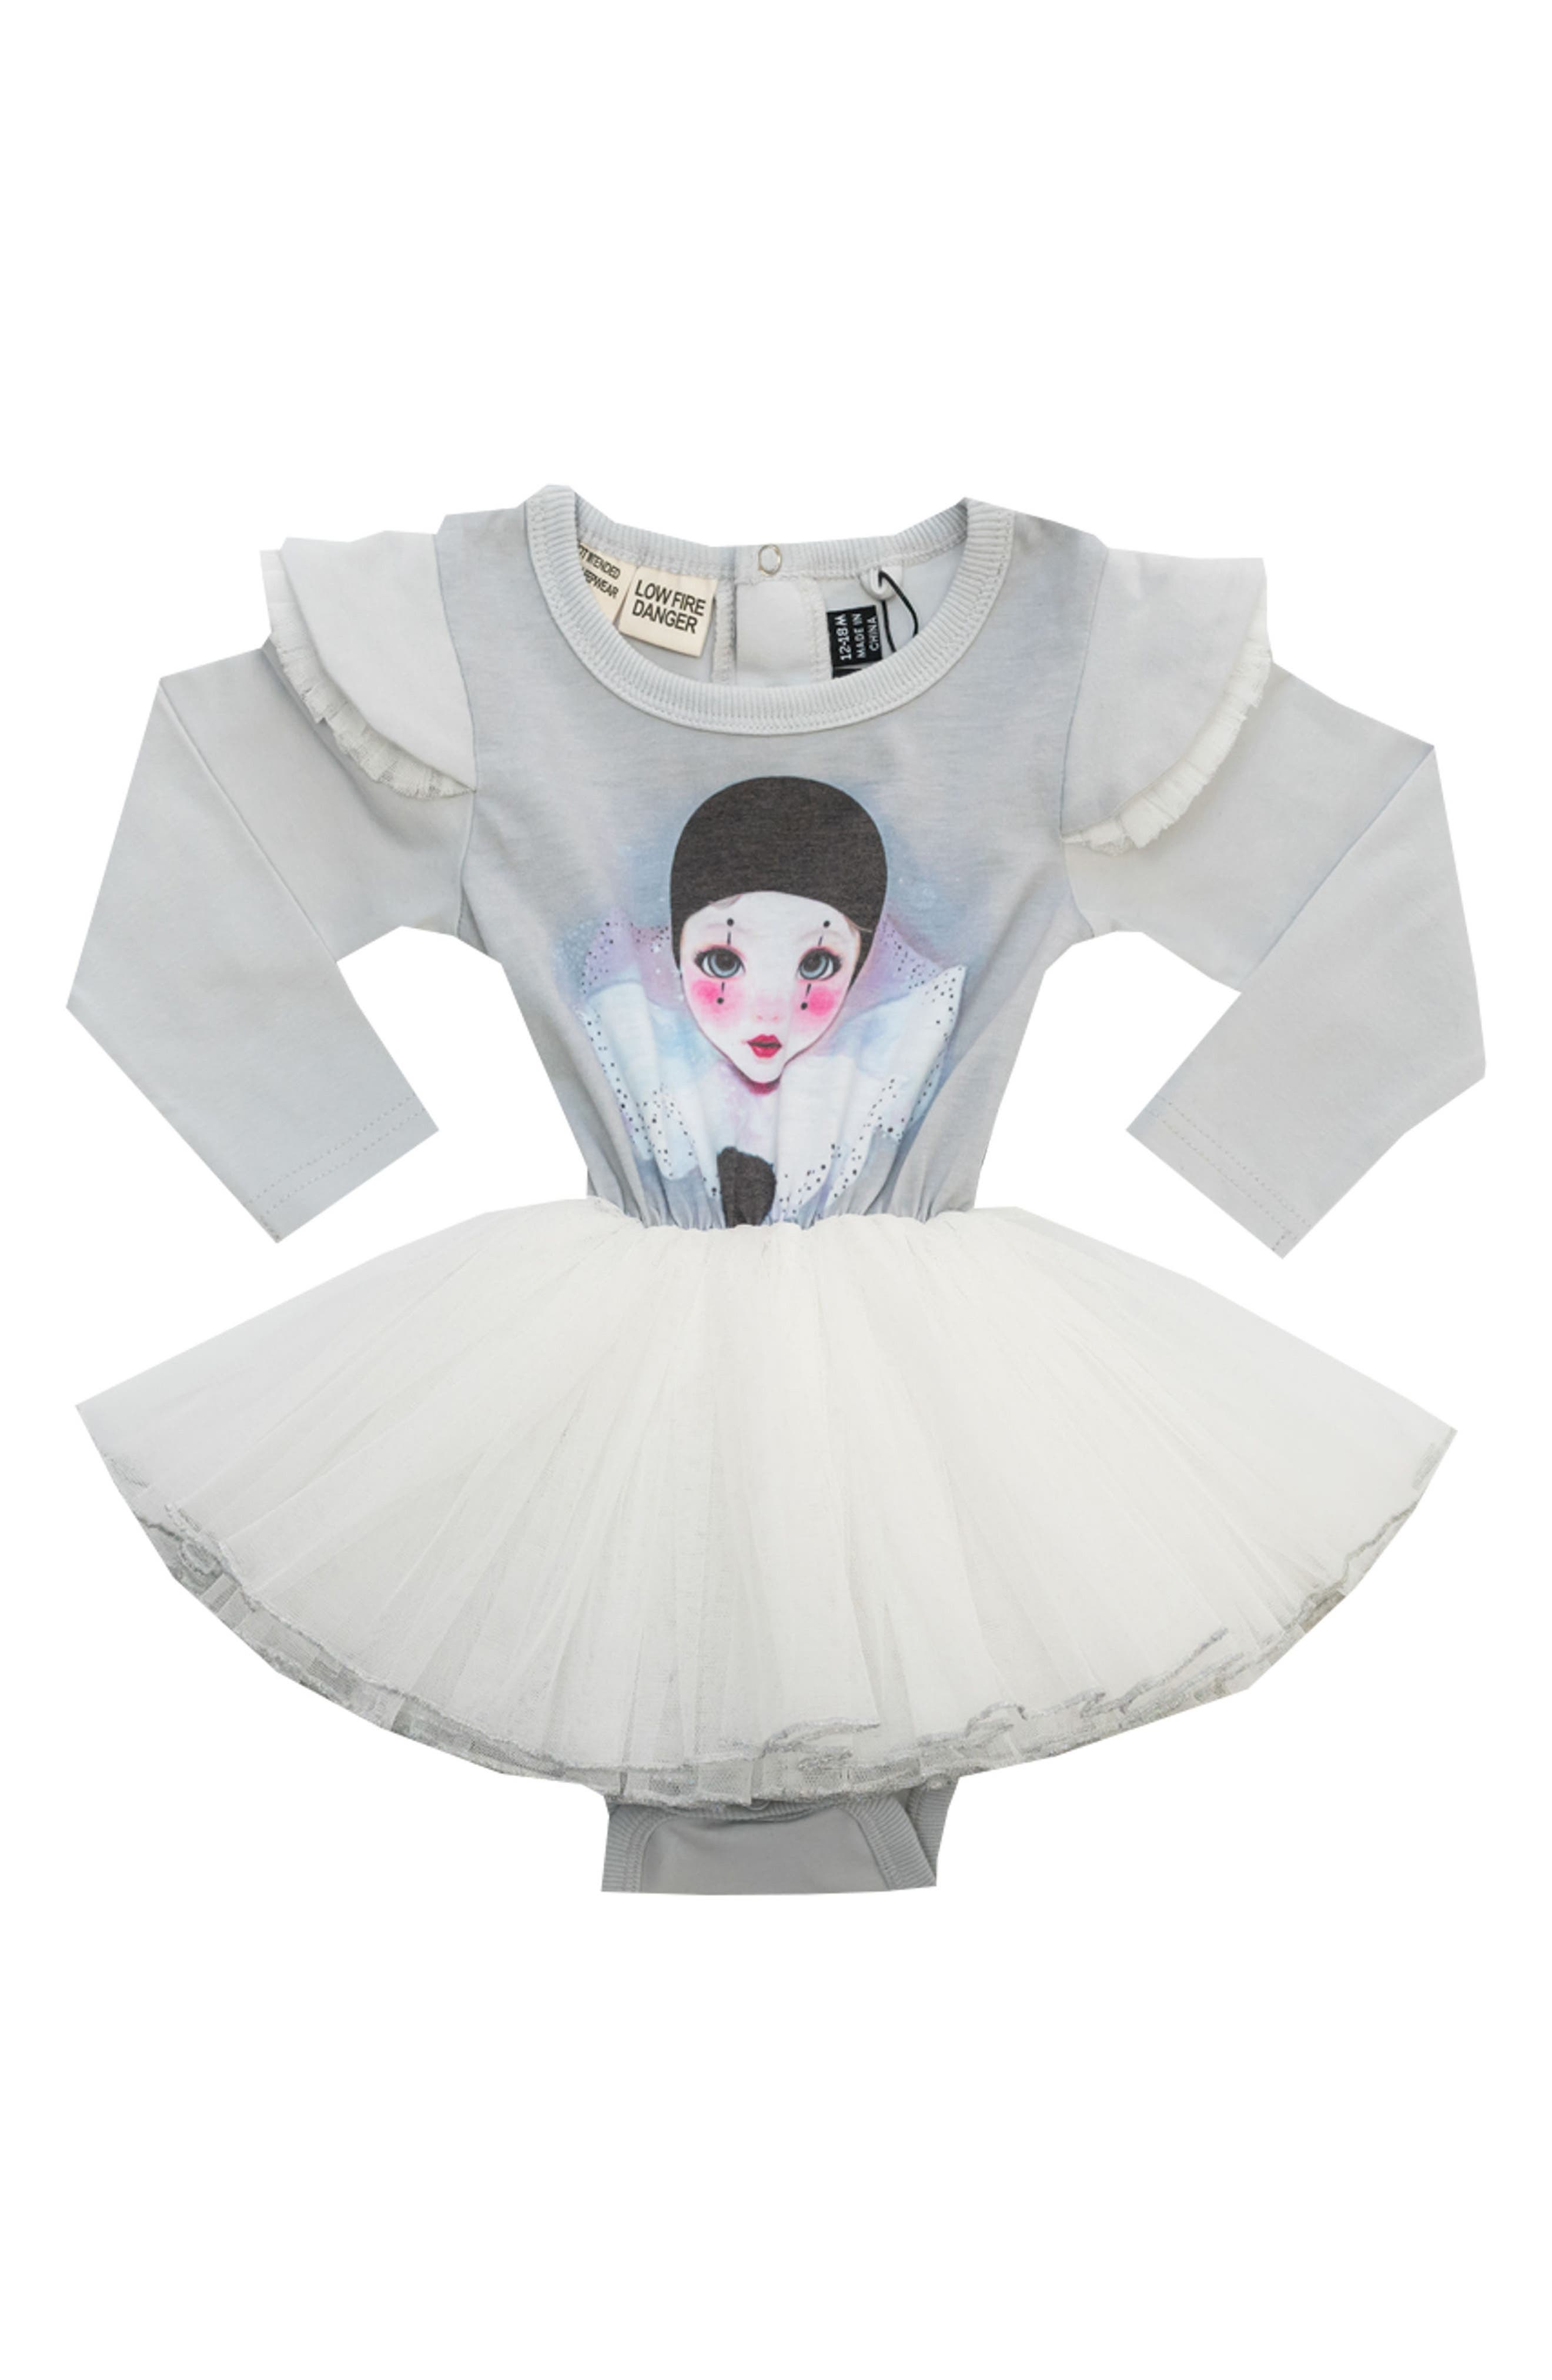 Main Image - Rock Your Baby Dance It Out Circus Tutu Bodysuit (Baby)